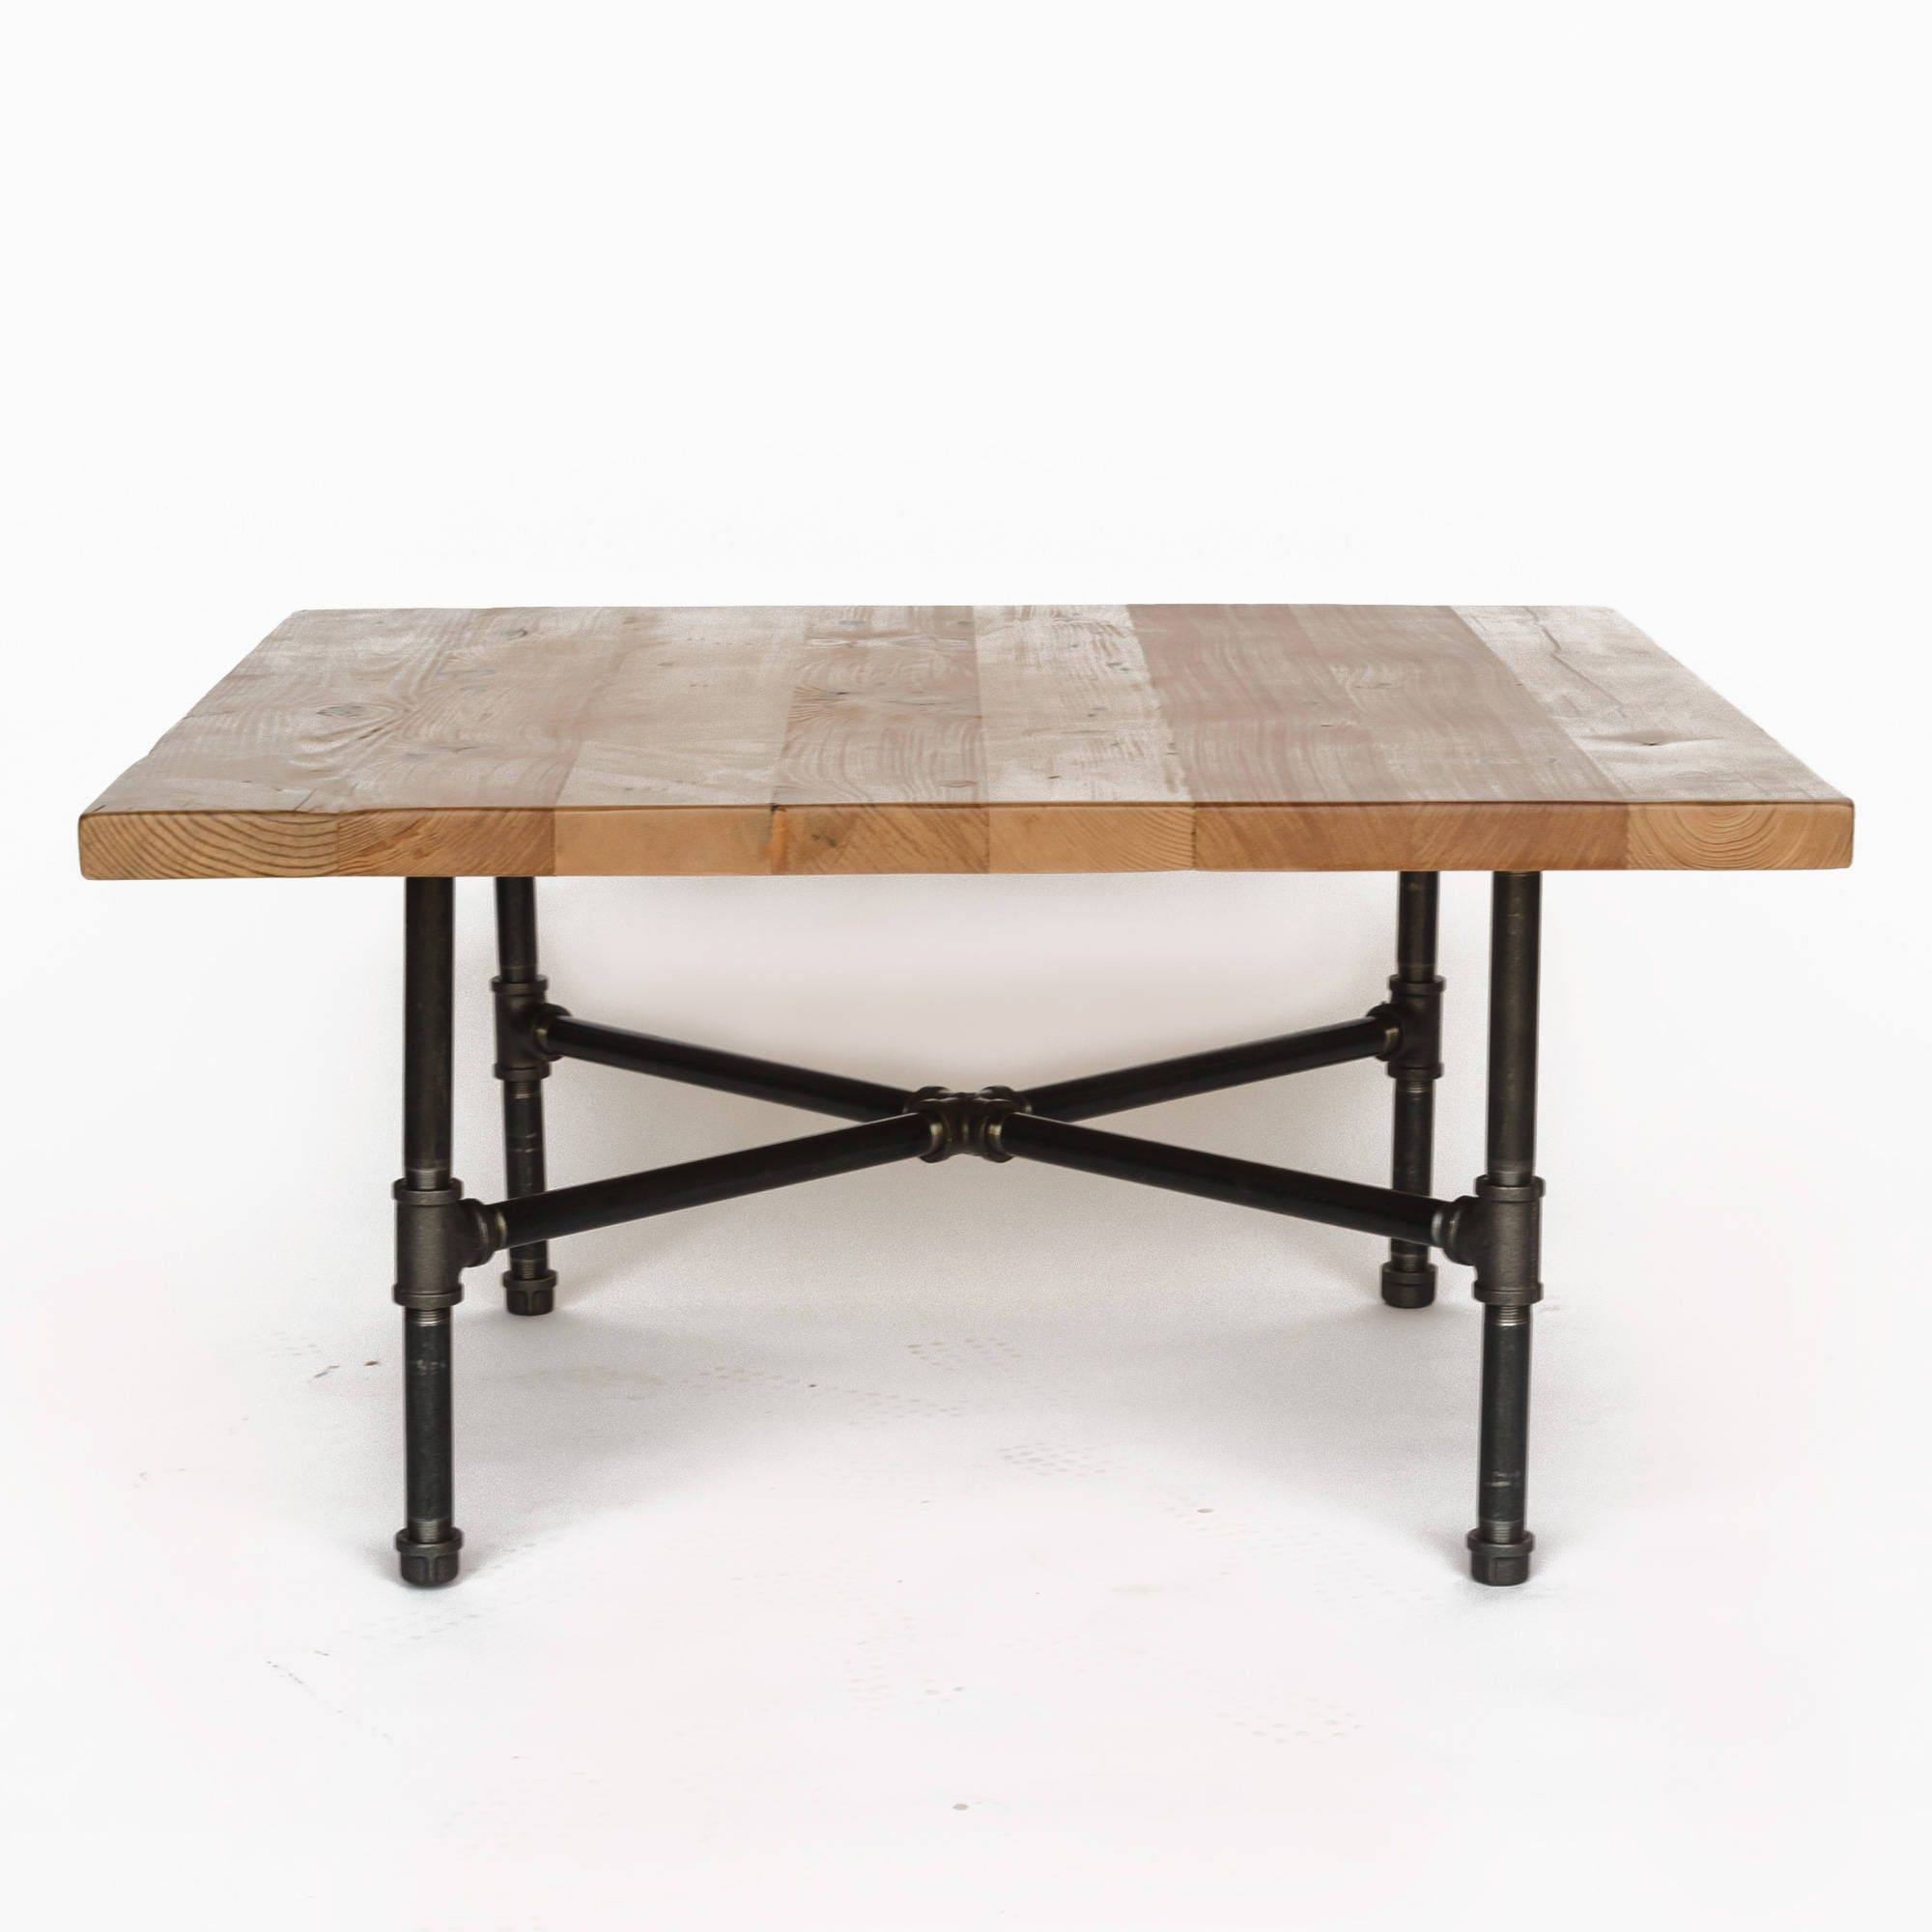 Coffee Table 3 Layers Black Square Metal Legs: Wood Coffee Table With Steel Pipe Legs Made Of Reclaimed Wood